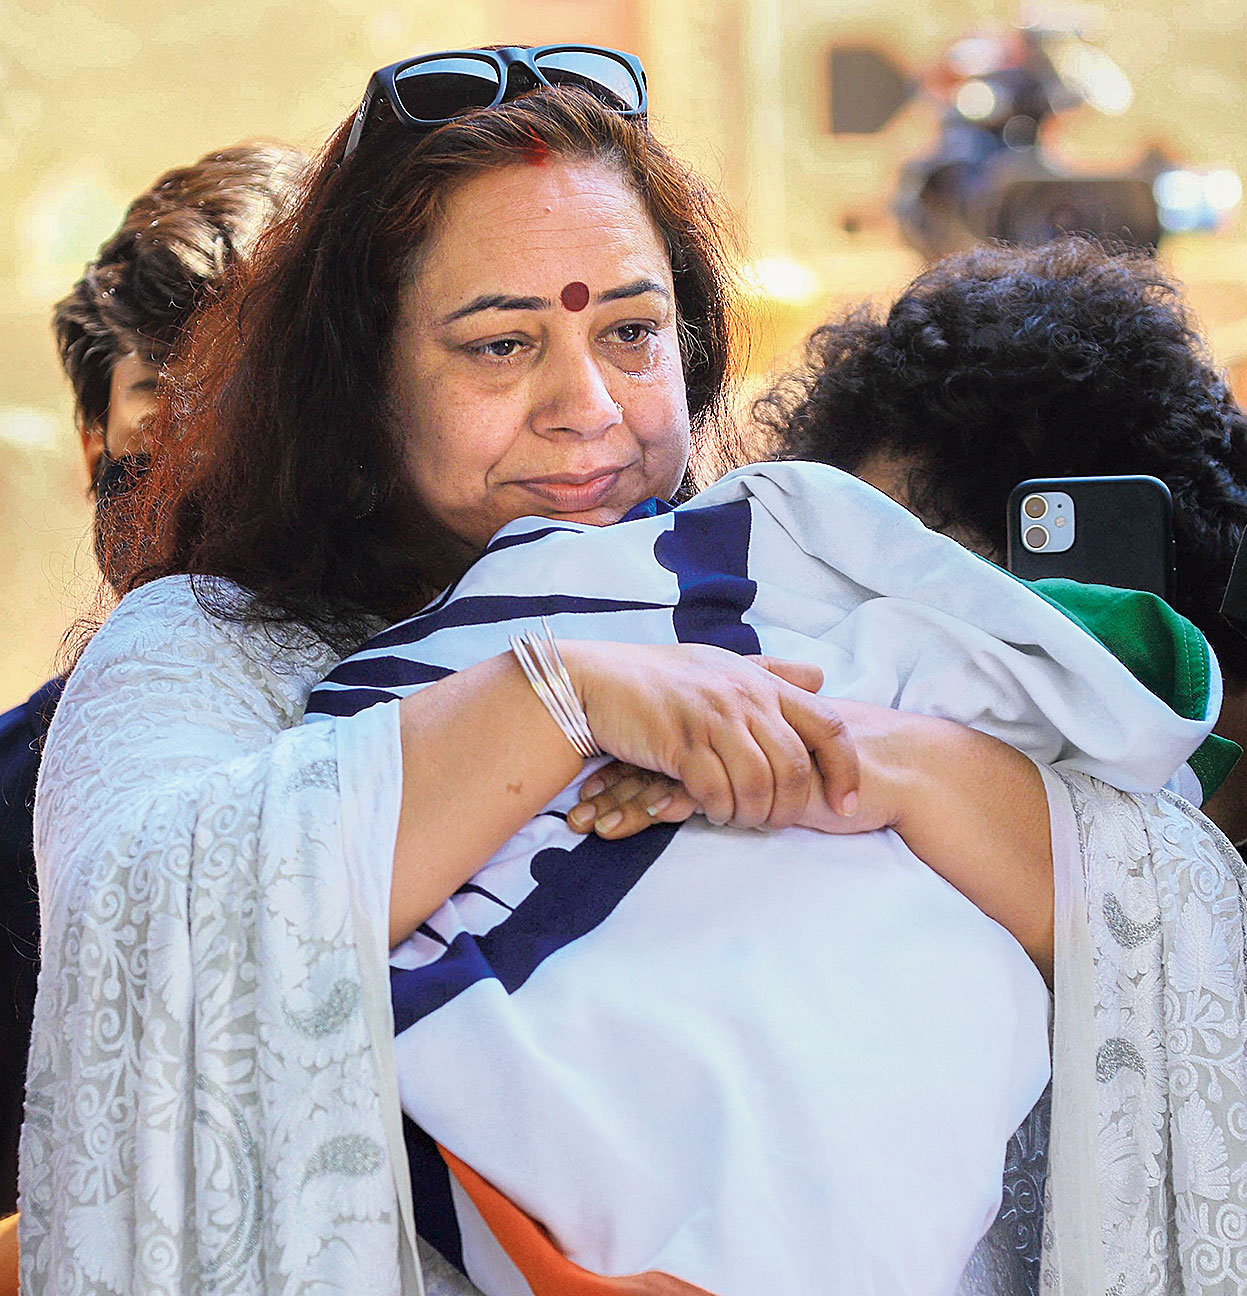 Pallavi Sharma, wife of Colonel Ashutosh Sharma, hugs the Tricolour that had draped her husband's body at his funeral in Jaipur on Tuesday. The commanding officer of 21 Rashtriya Rifles was killed in a gunfight with militants in Kashmir on Sunday.